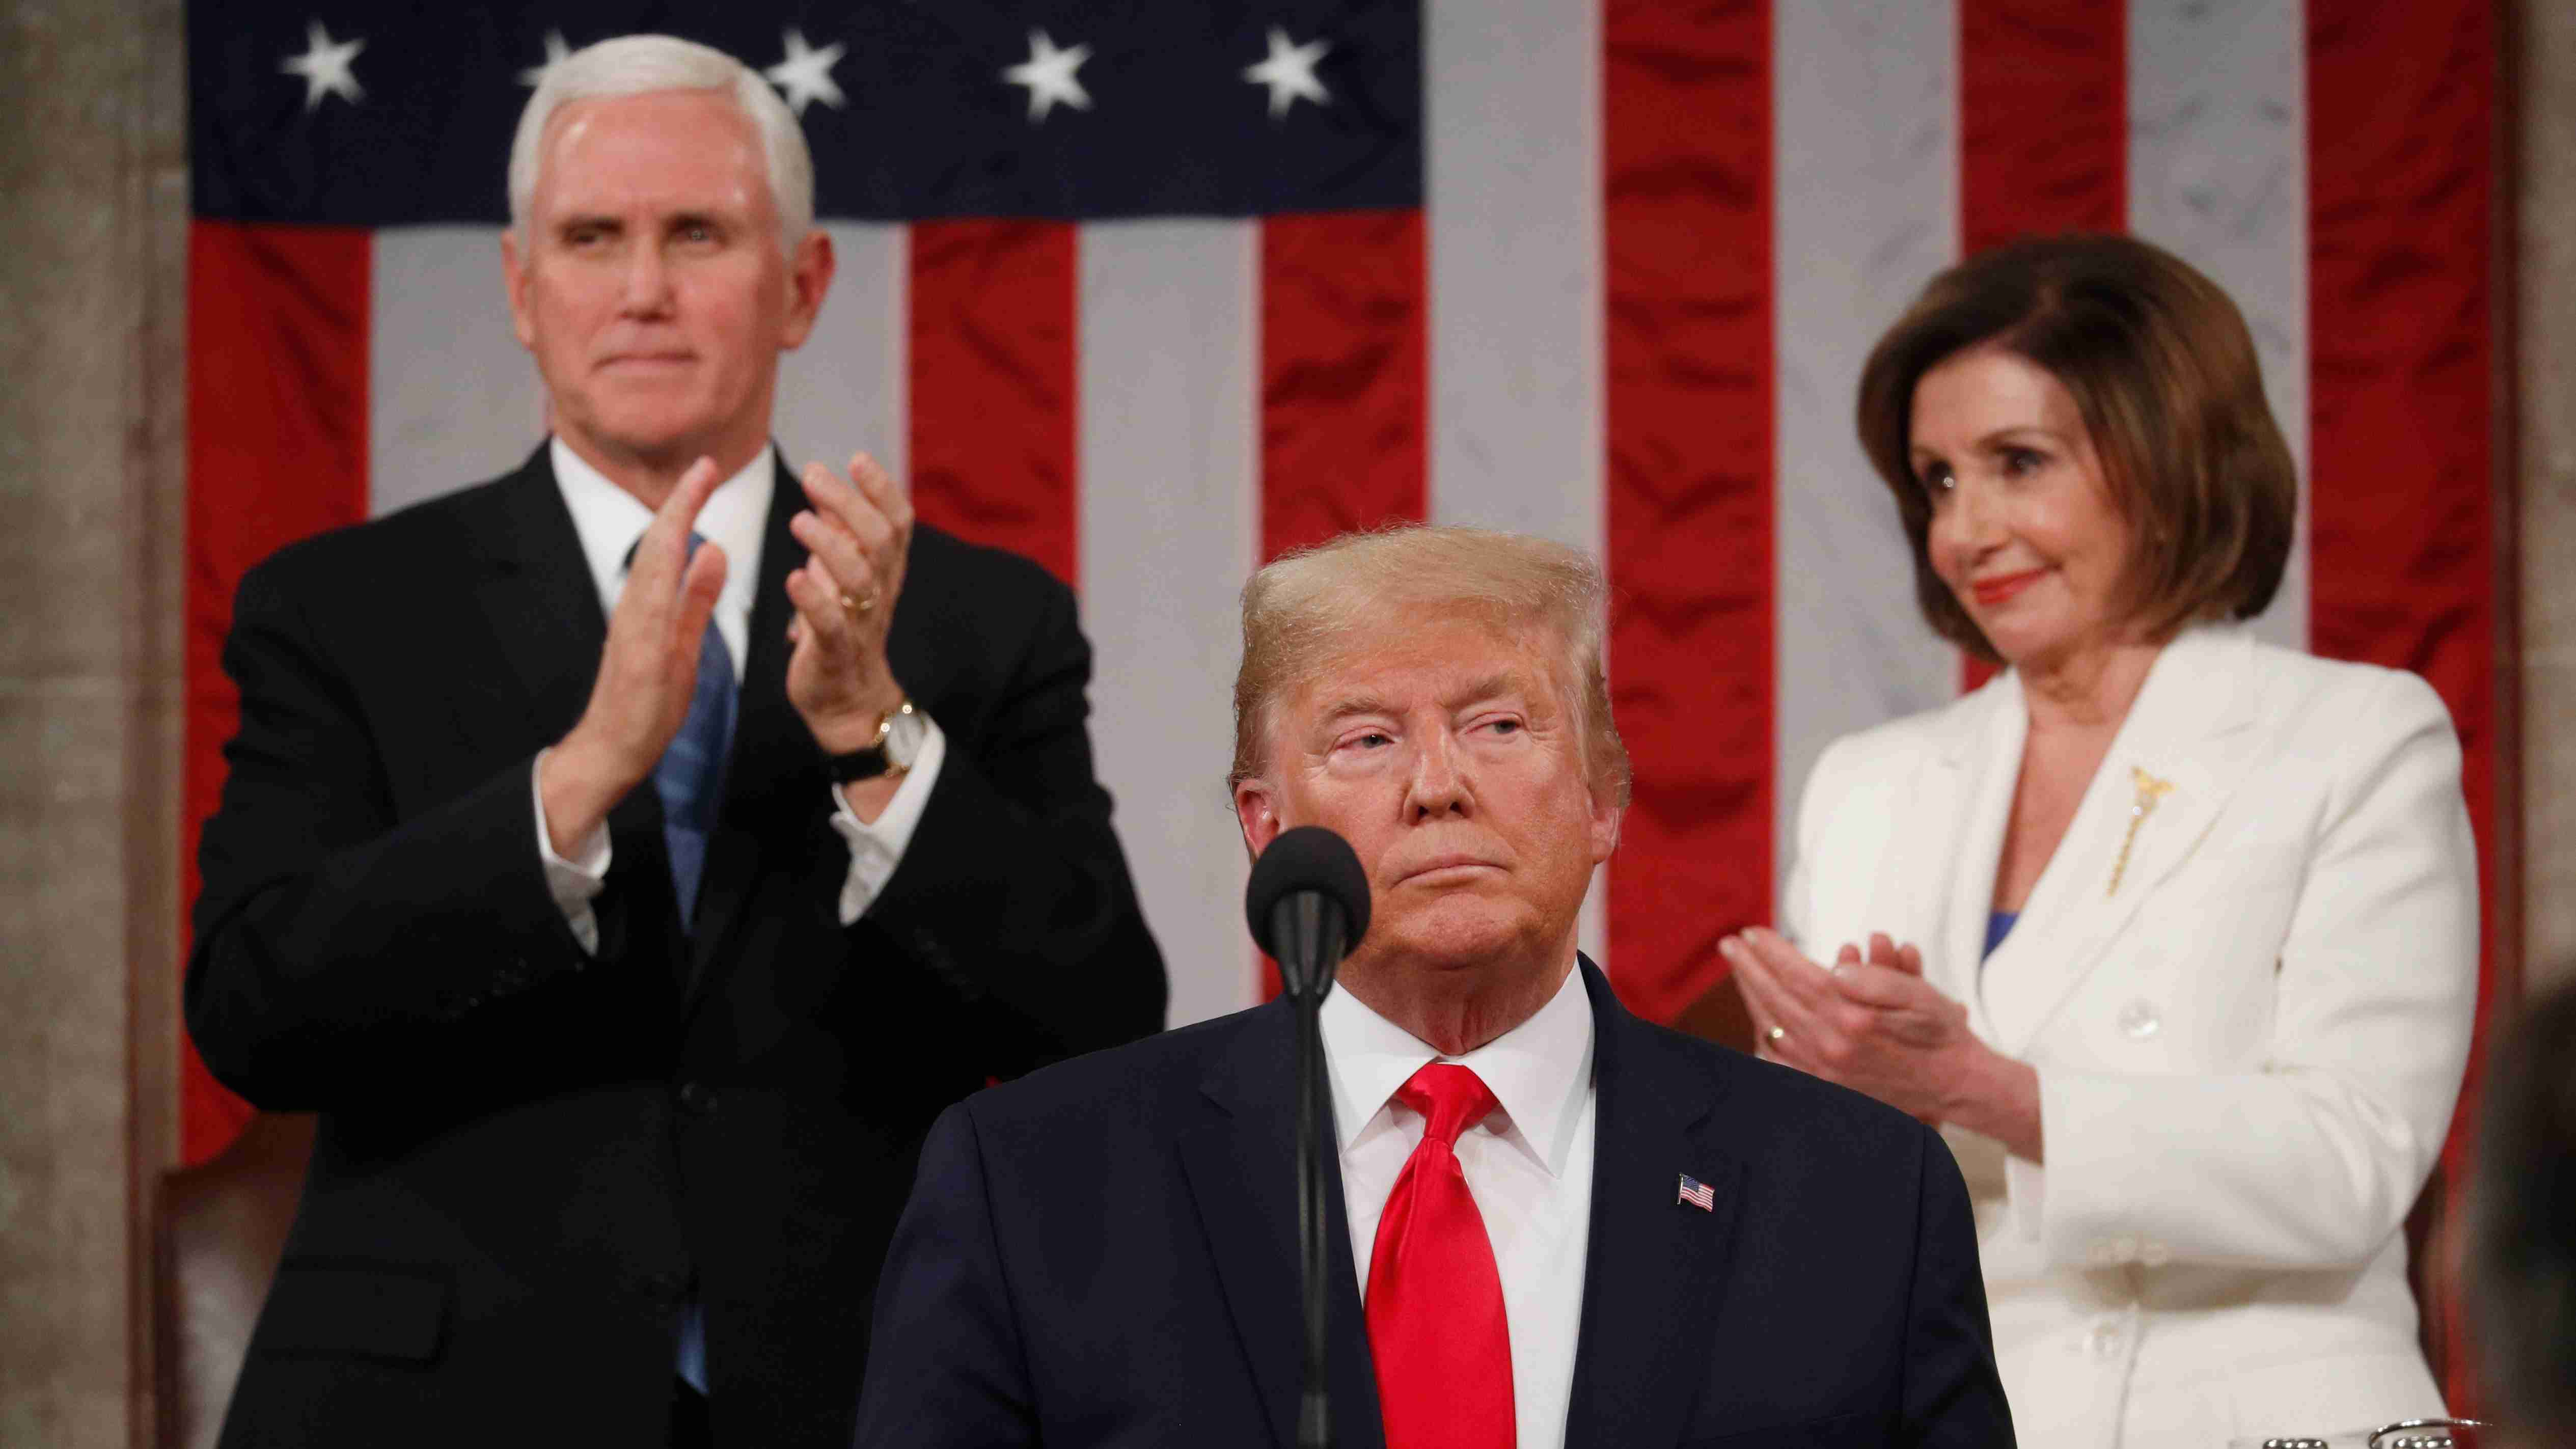 U.S. President Donald Trump delivers his State of the Union address to a joint session of the U.S. Congress in the House Chamber of the U.S. Capitol in Washington, U.S. February 4, 2020. REUTERS/Leah Millis/POOL